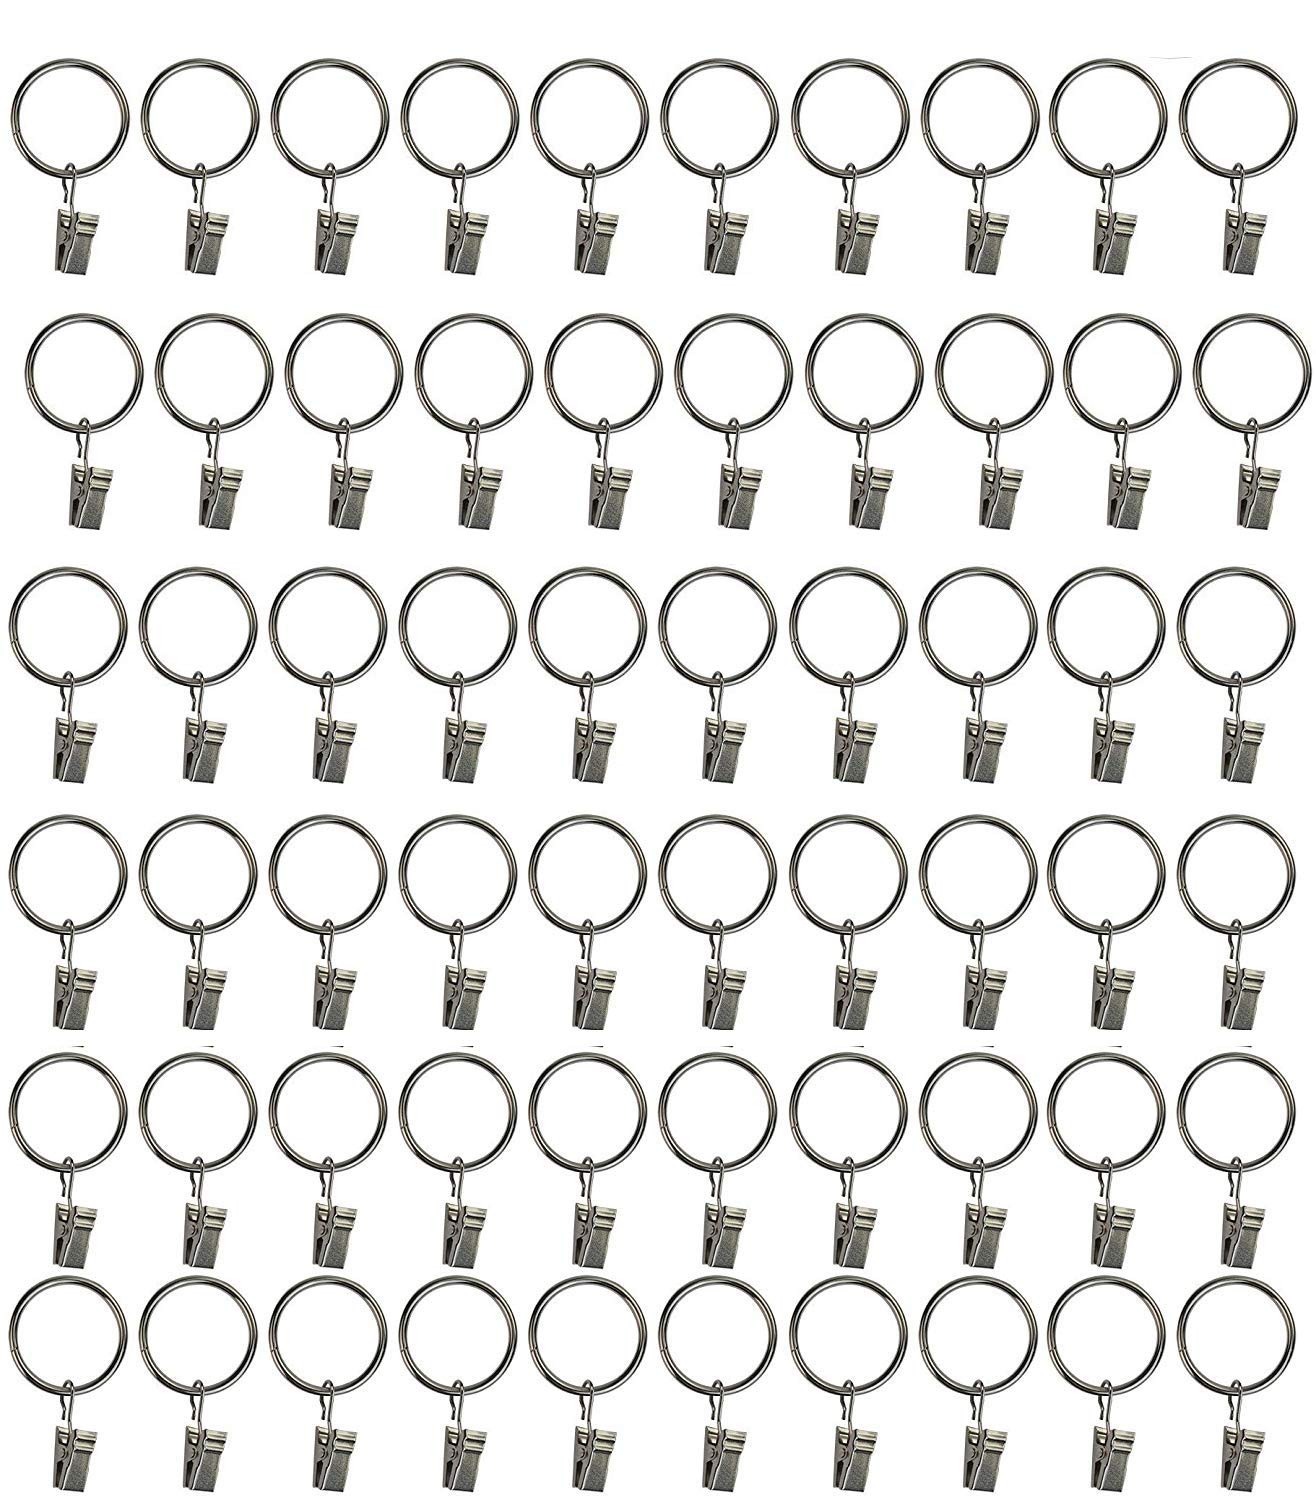 CRIVERS Practical Metal Curtain Clips Rings Drapery Curtain Rings with Clips (40pc)